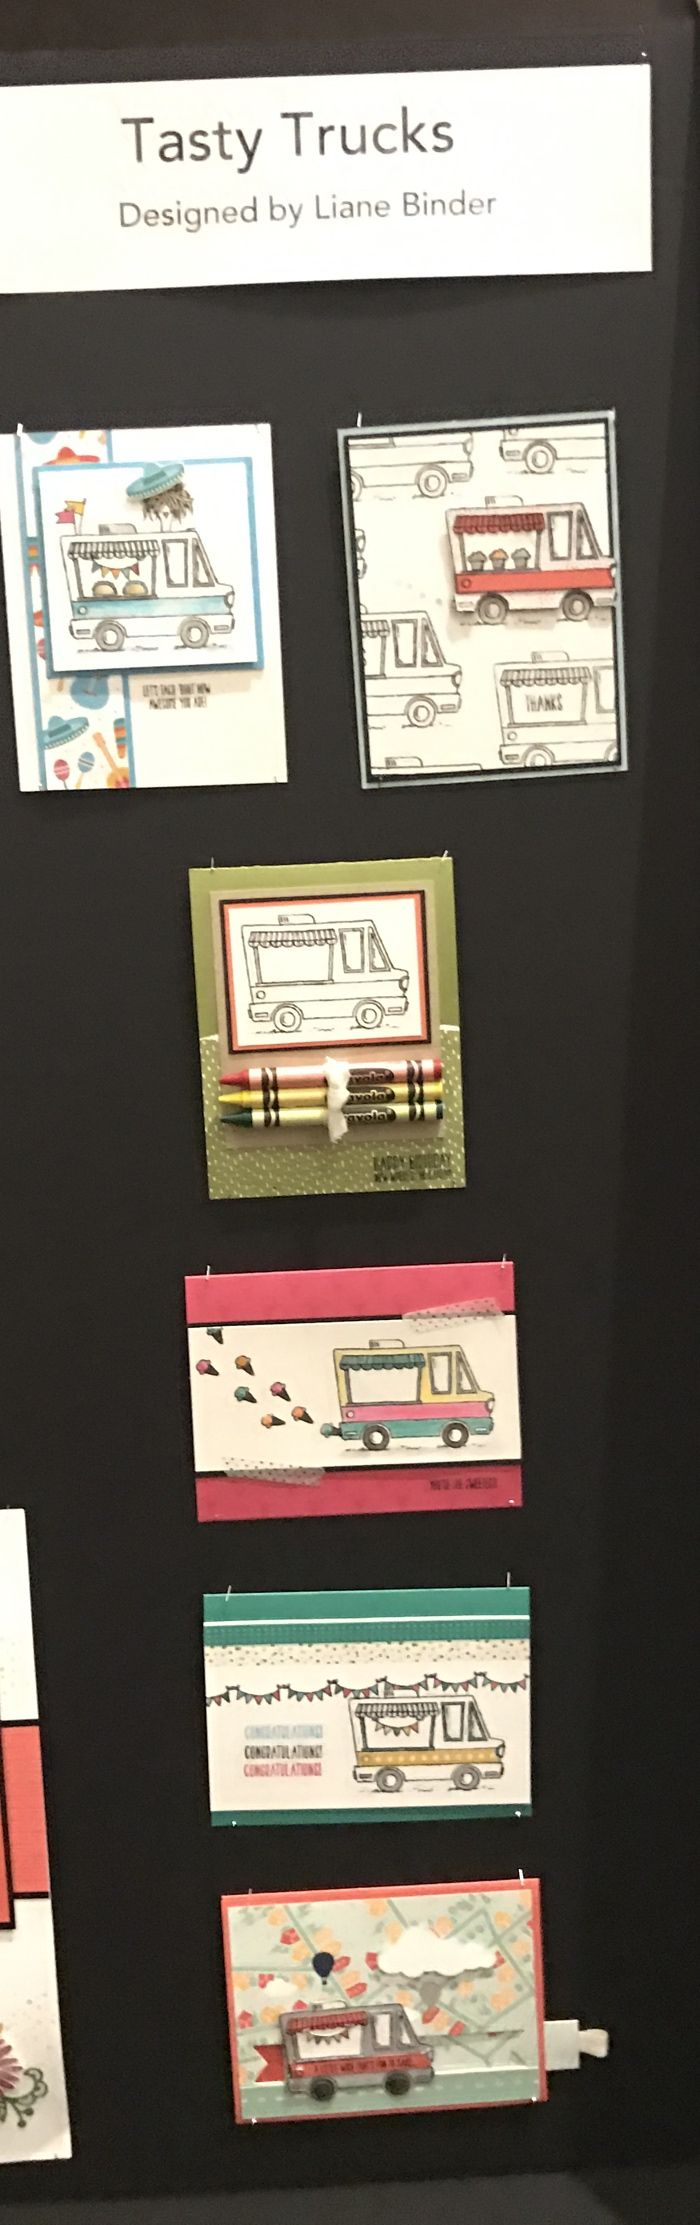 The tasty trucks stamp set is from the stampin up 2017 sale